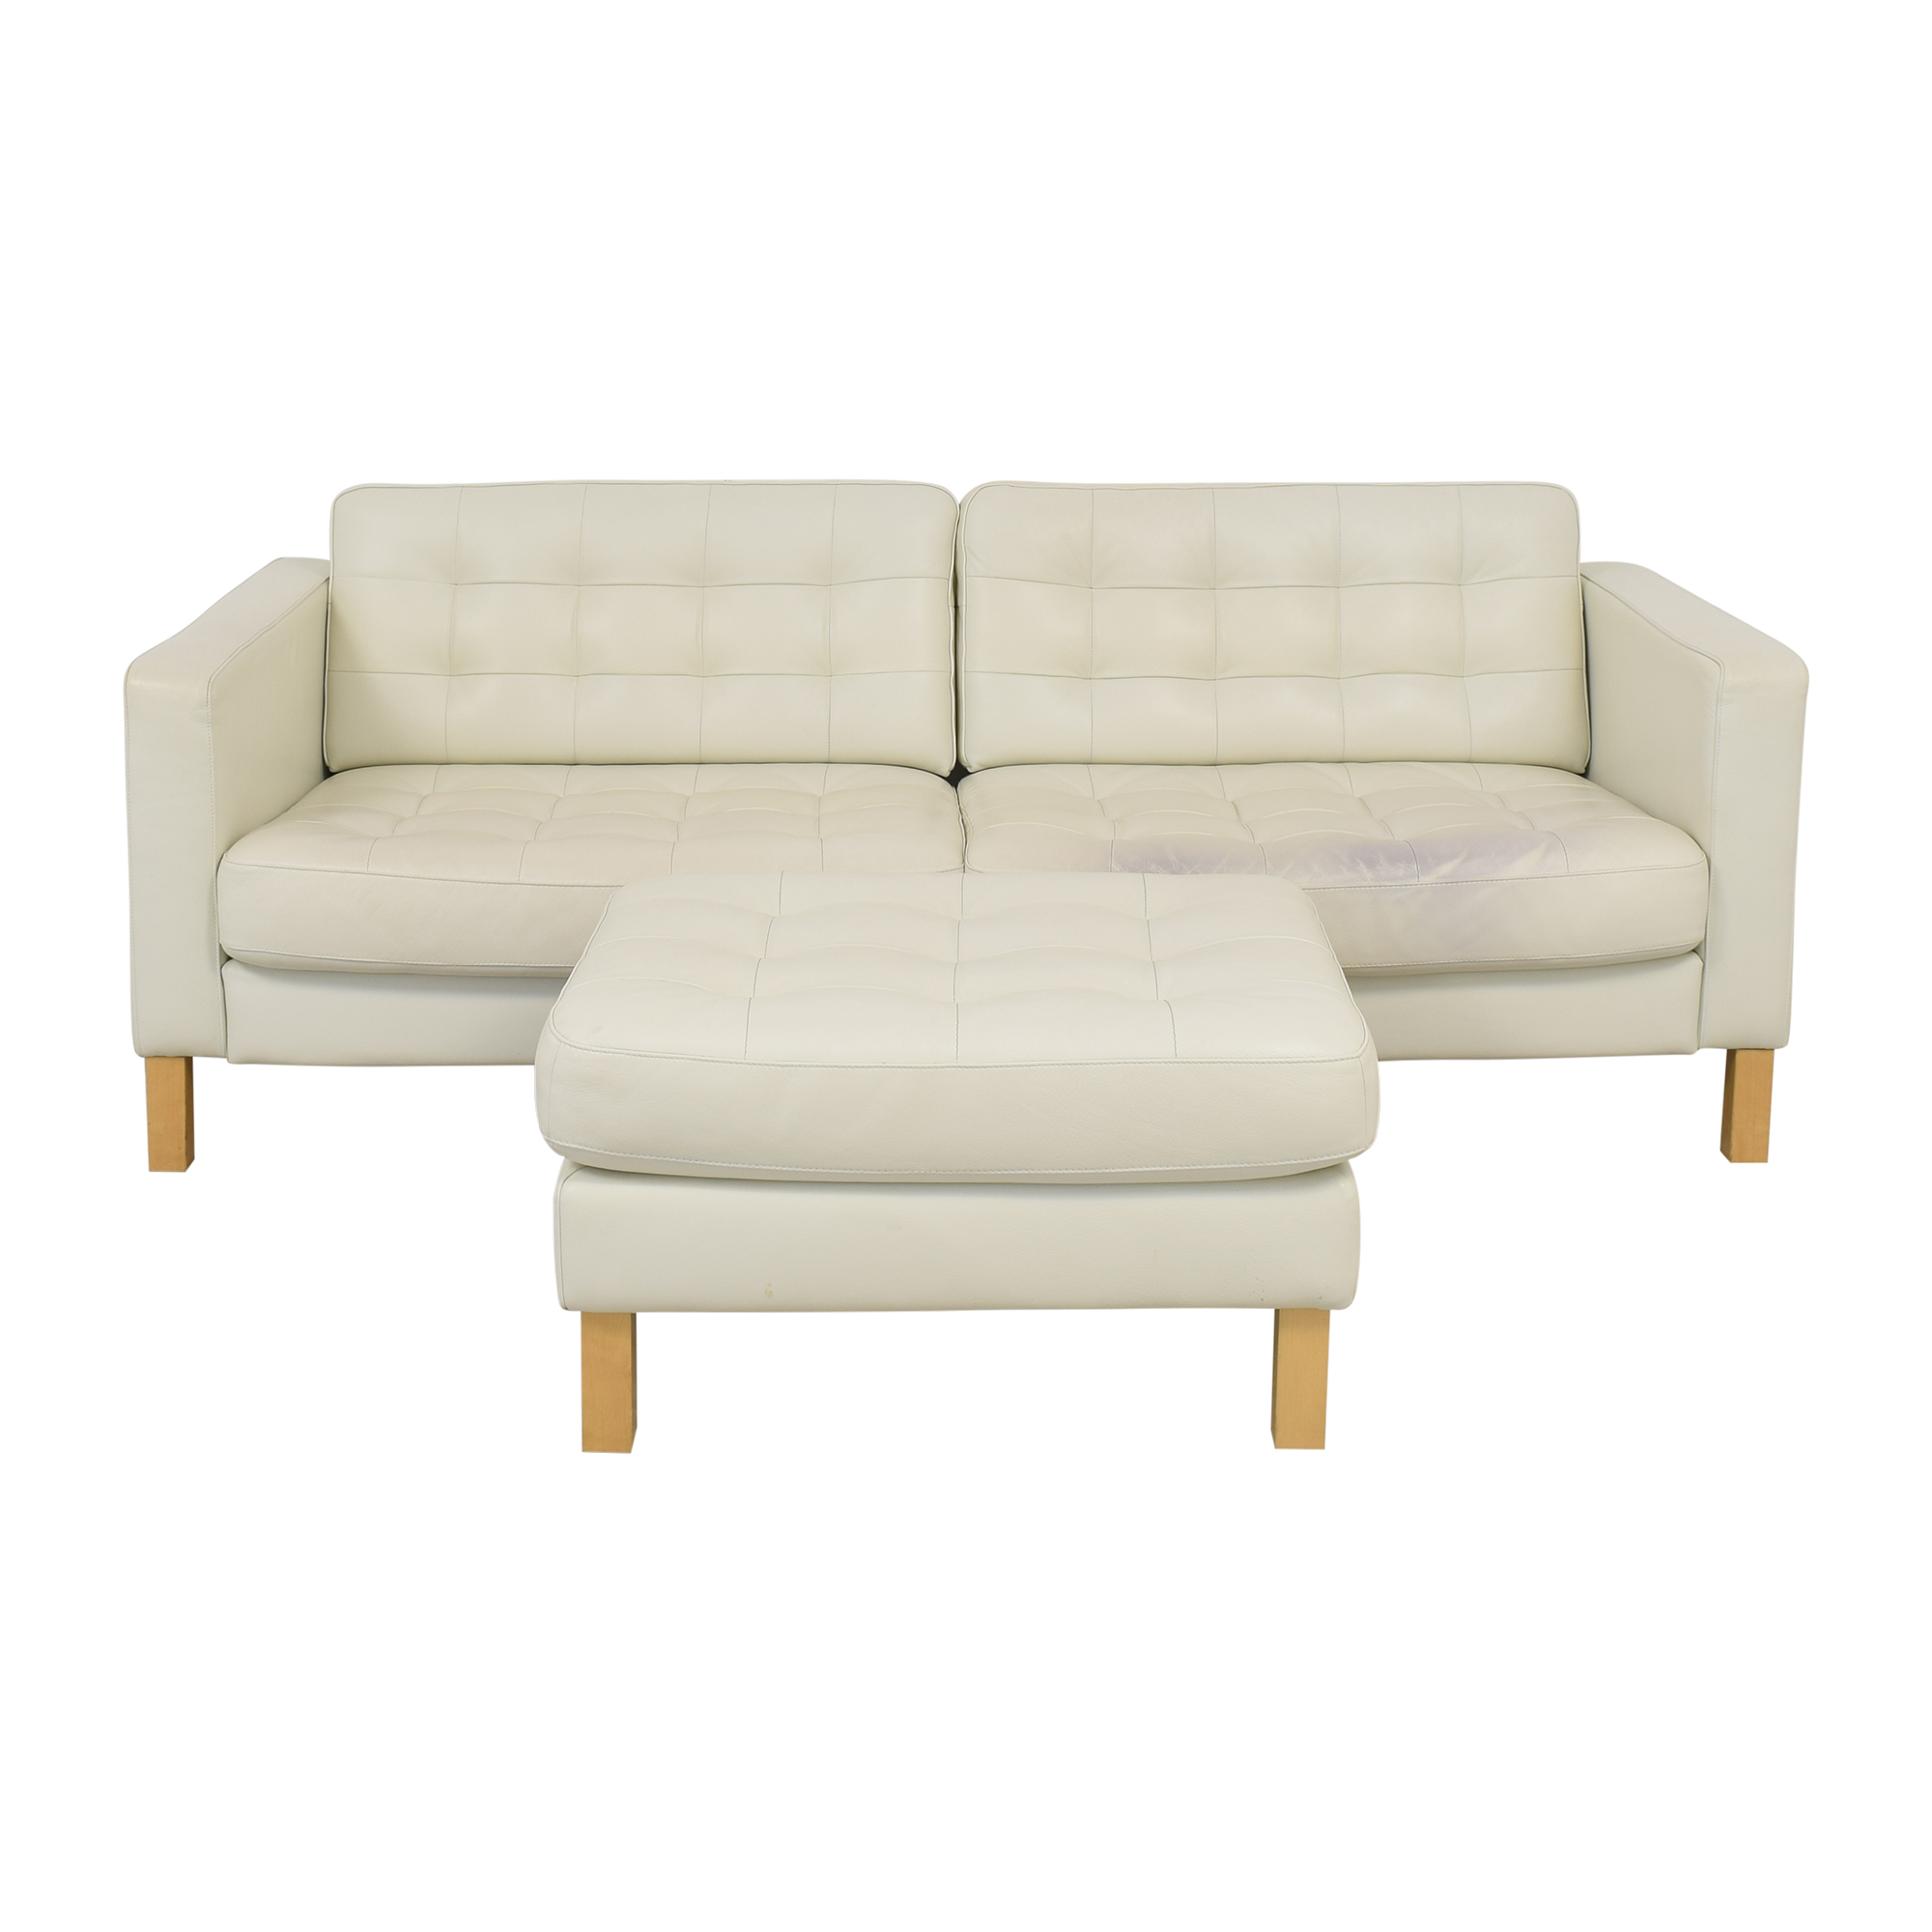 IKEA IKEA Two Cushion Sofa with Ottoman off white